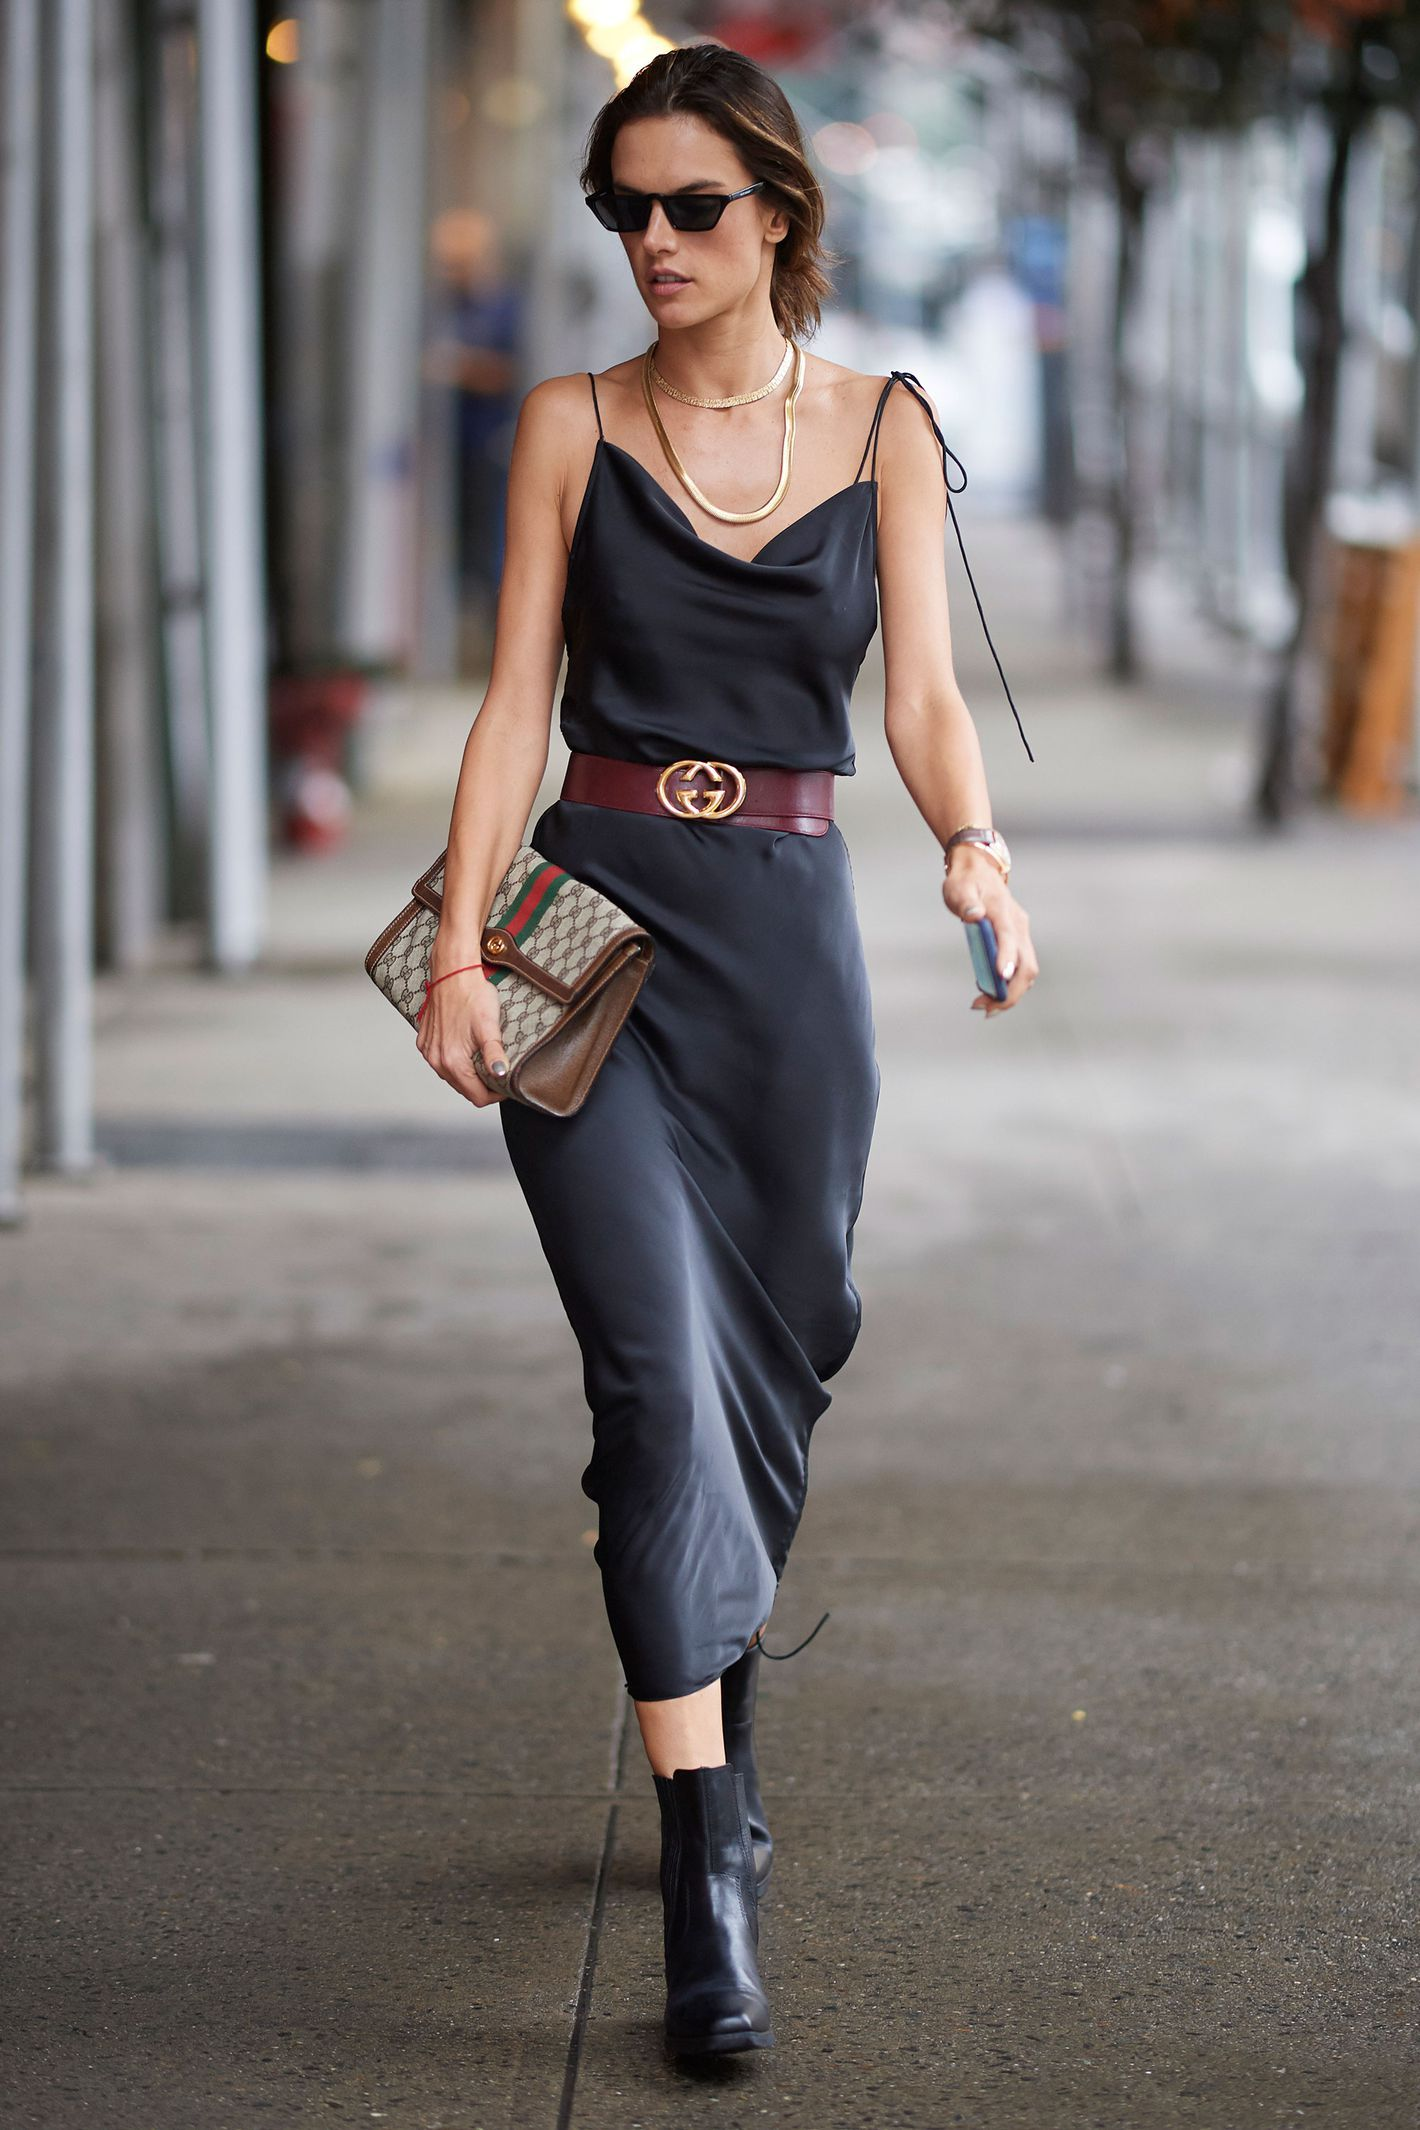 15 autumn dressing ideas from the New York street stylers